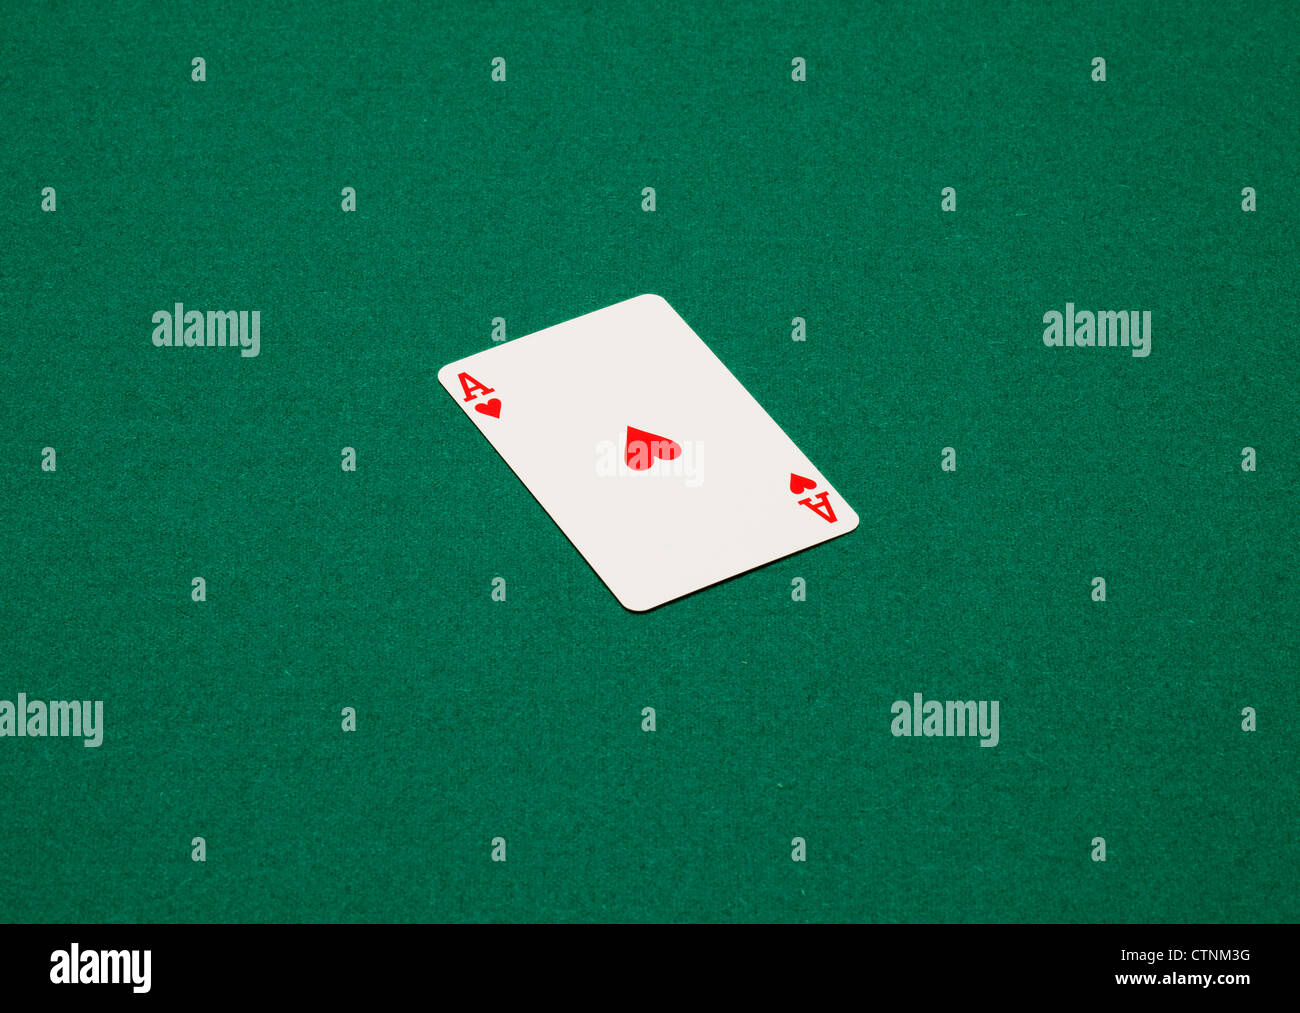 Playing card on a green table. The ace of hearts - Stock Image